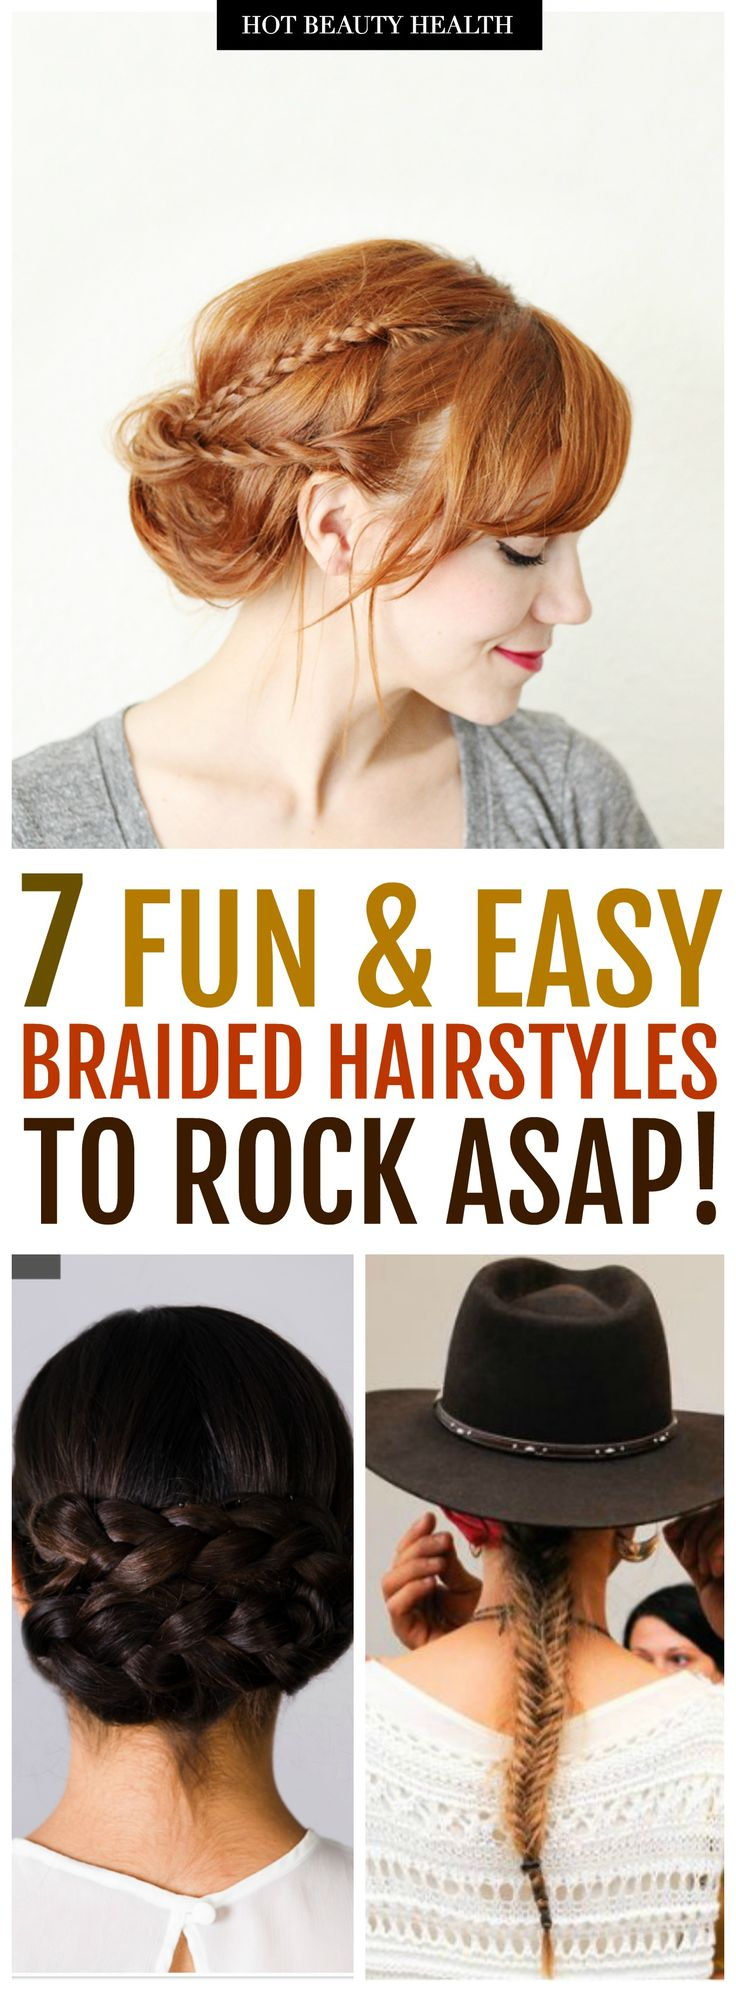 7 easy braided hairstyles you'll love. Learn how to do ponytail, updo, crown, boho and messy styles. Works best on medium and long hair. These cute hair ideas are great for formal like prom and even casual styles for school, work, or everyday. Click pin for the list of step by step tutorials! Hot Beauty Health #hairstyles #hairtutorials #breads #breadedhairstyles